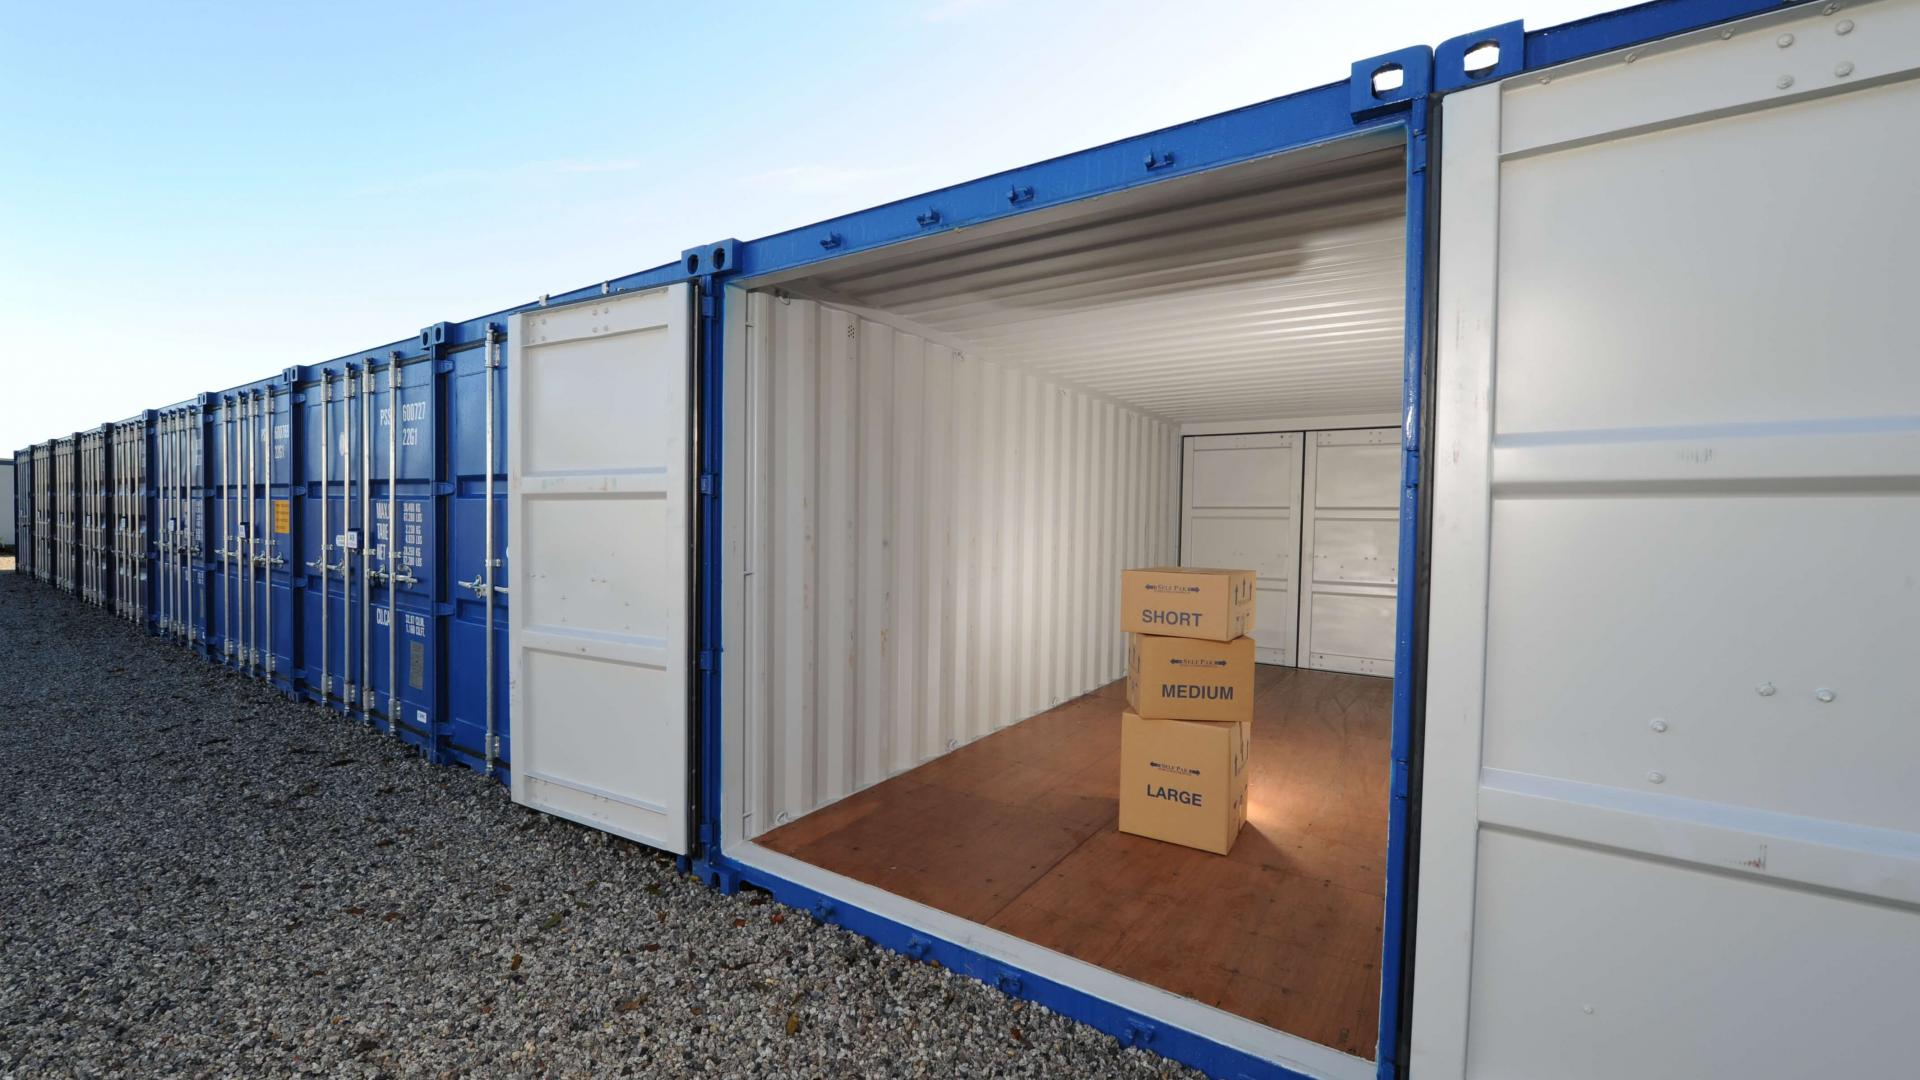 Row of storage containers with boxes inside